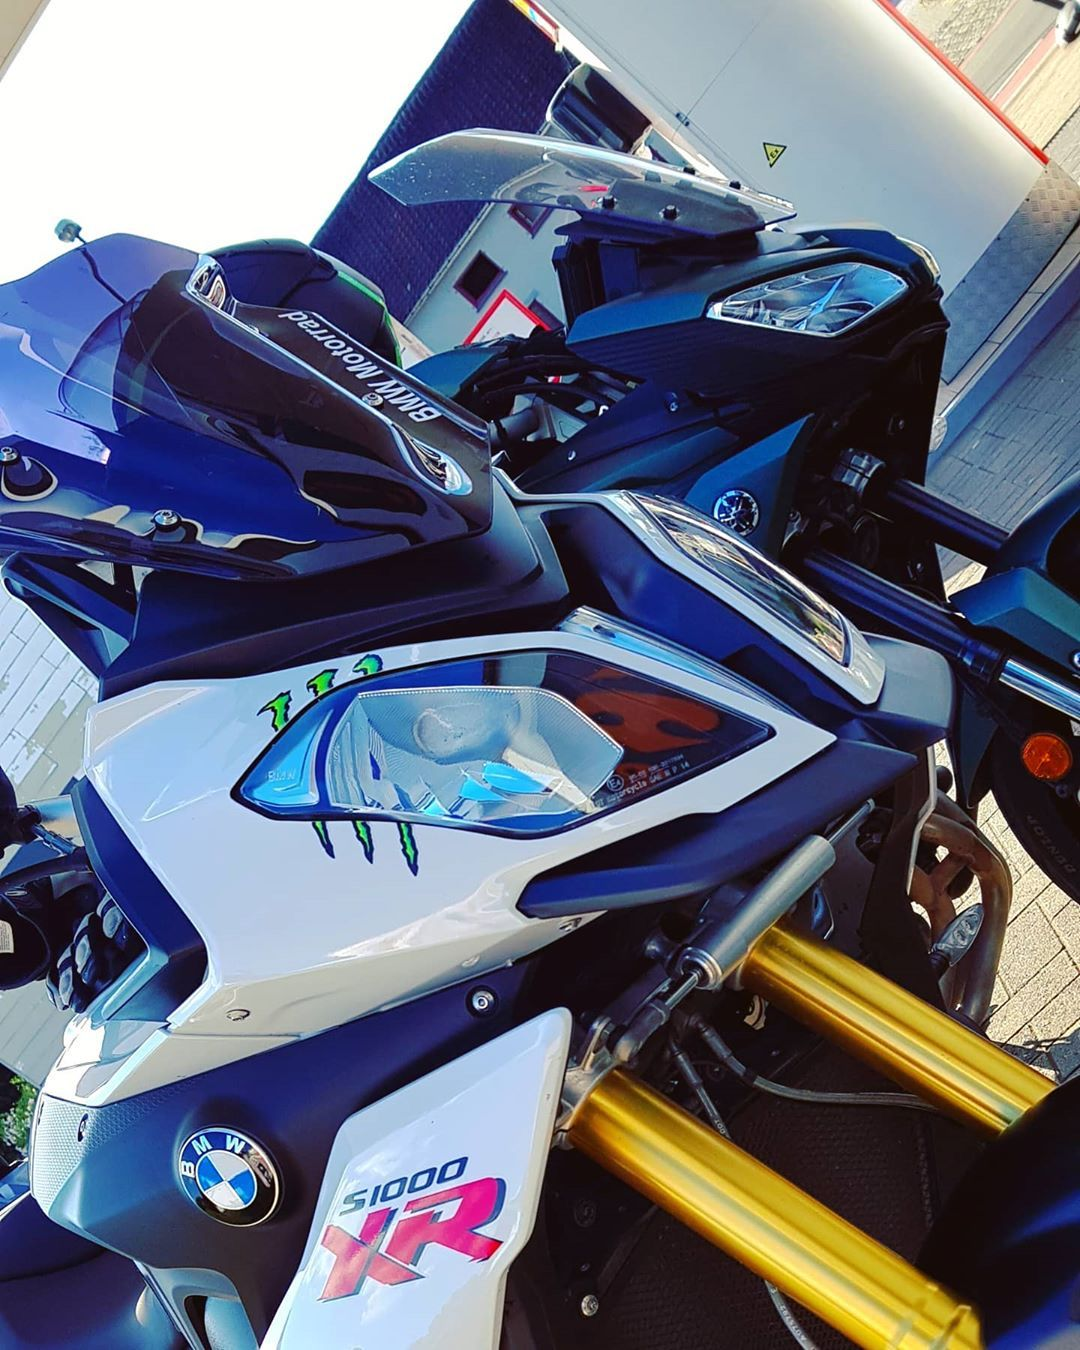 No Road Is Too Long When You Have Good Company Bmw Bmws1000xr S1000xr S1000rr S1000r Yamahatracer900 Tracer900 R In 2020 Motorcycle Life Bmw Ardennes